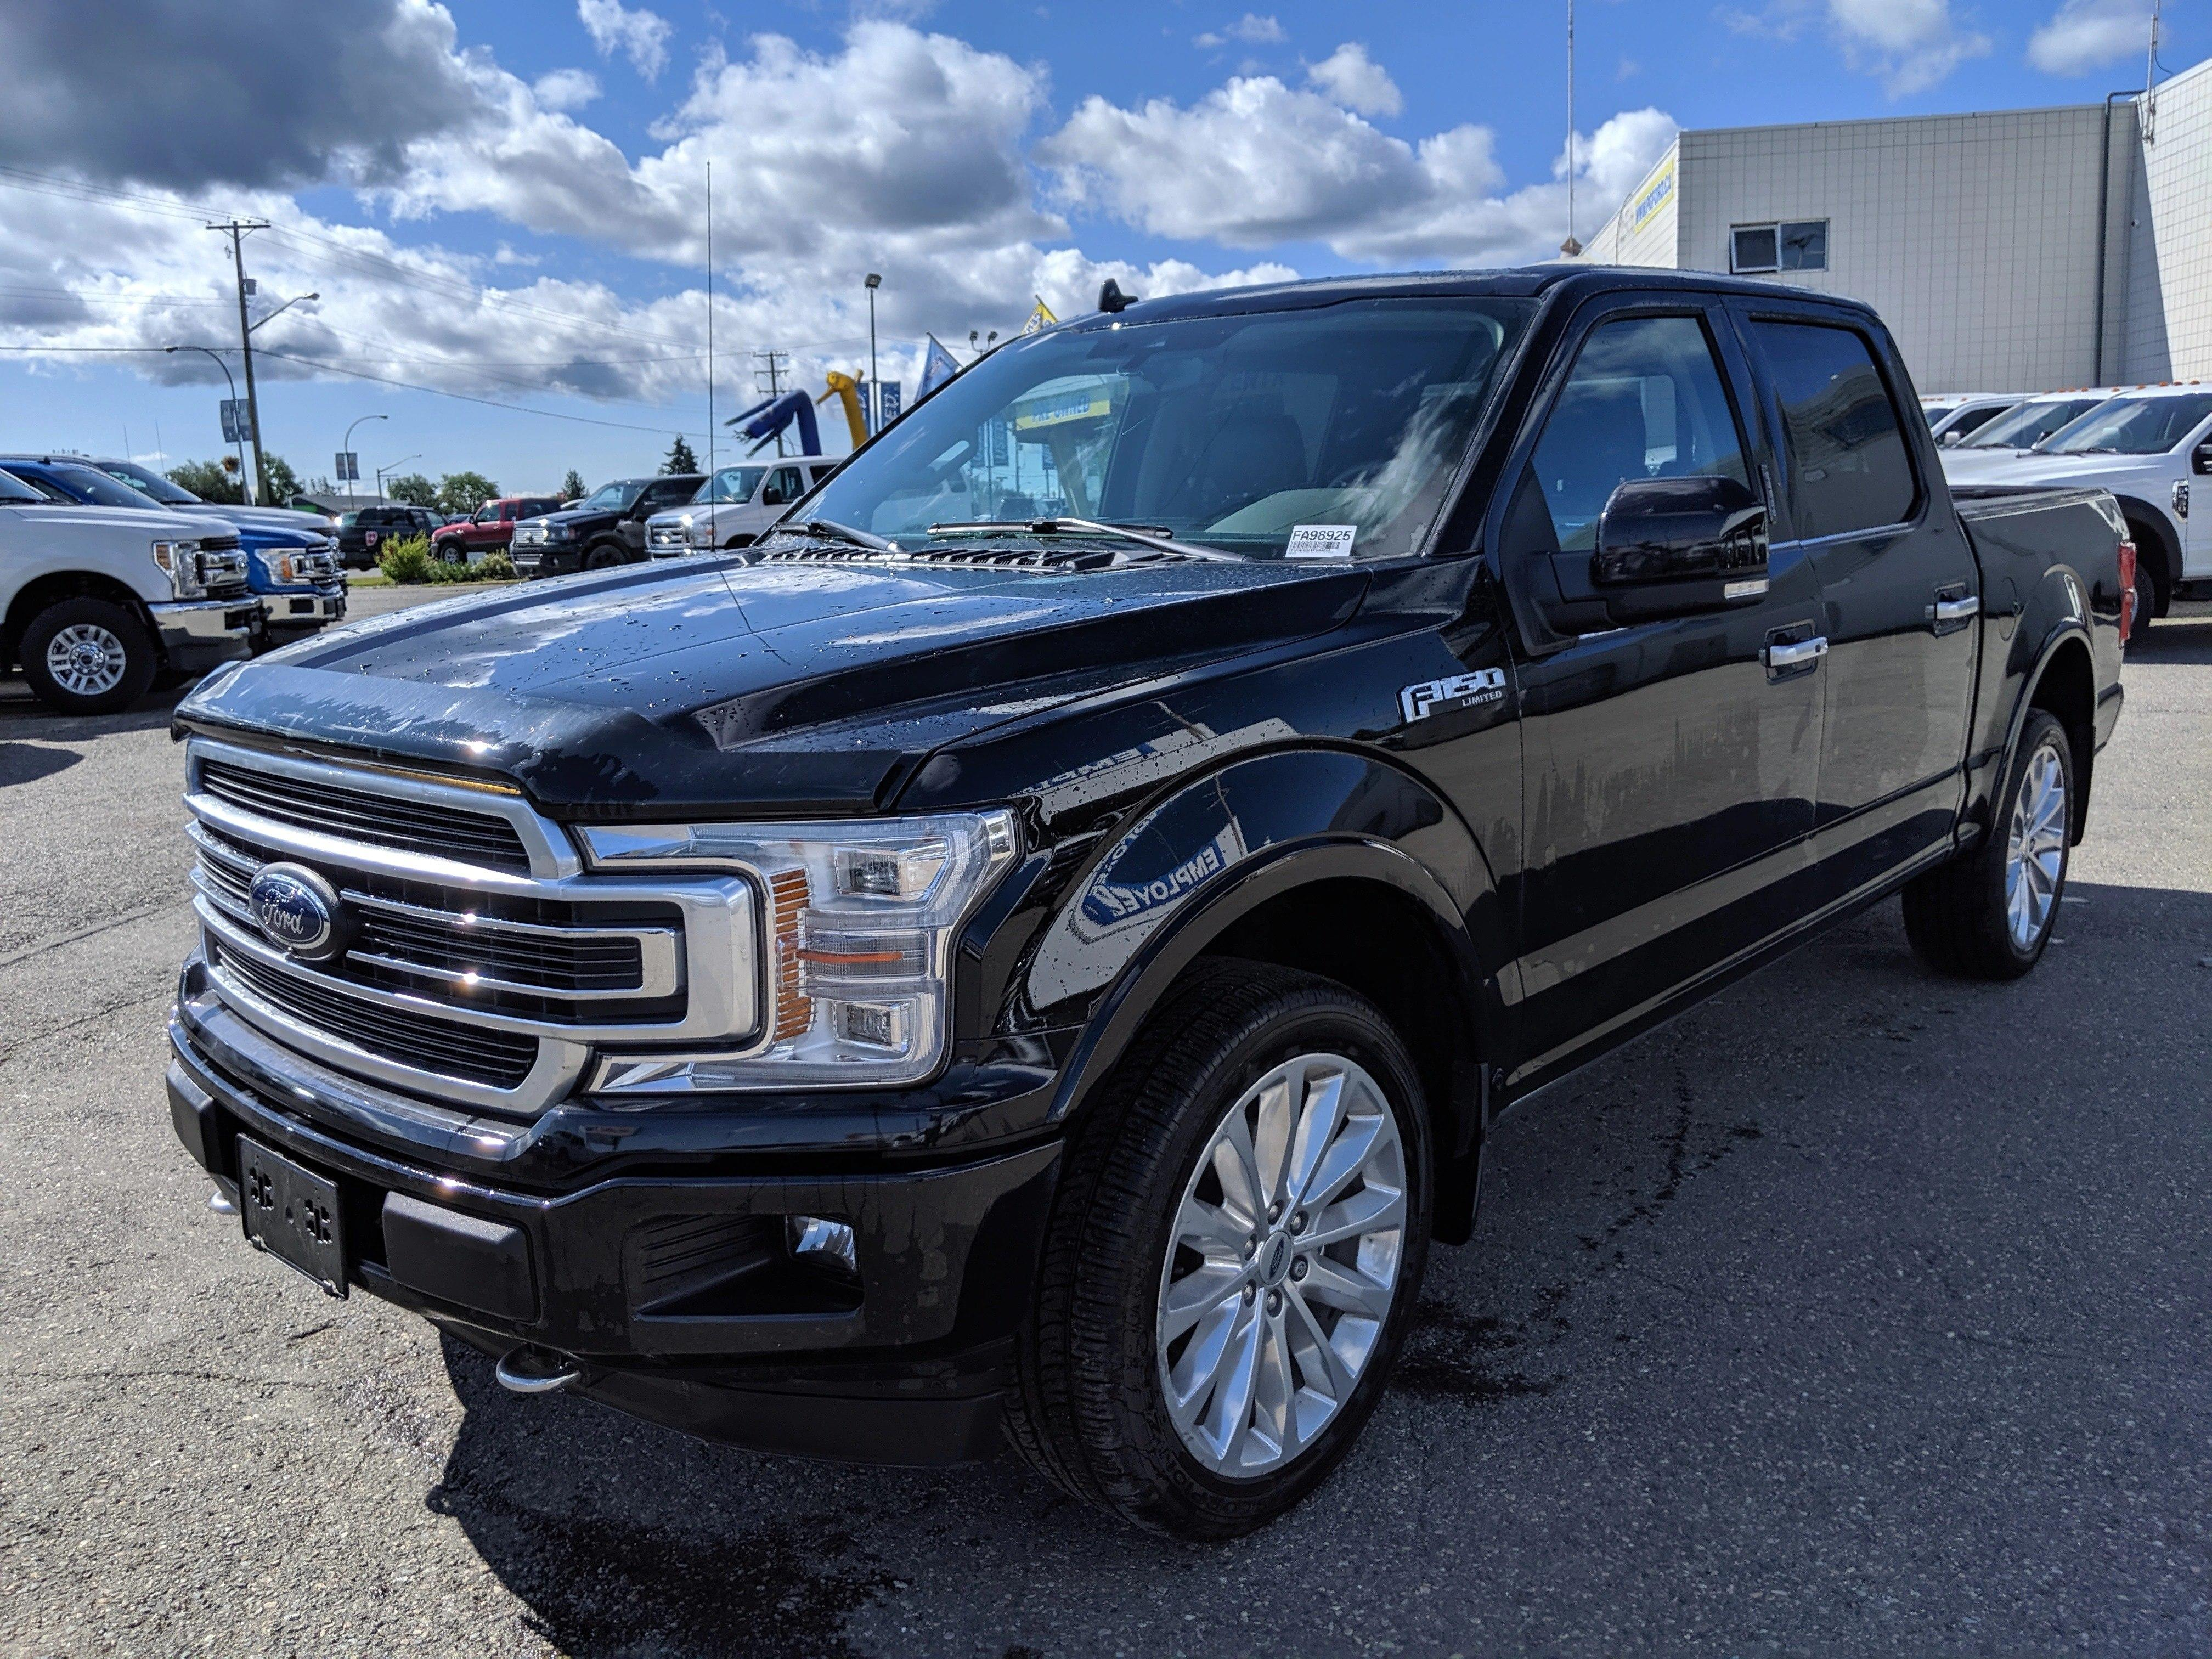 2019 Ford F-150 Limited | Demo Unit | $18,873 in Savings | Best Fo Crew Cab Pickup